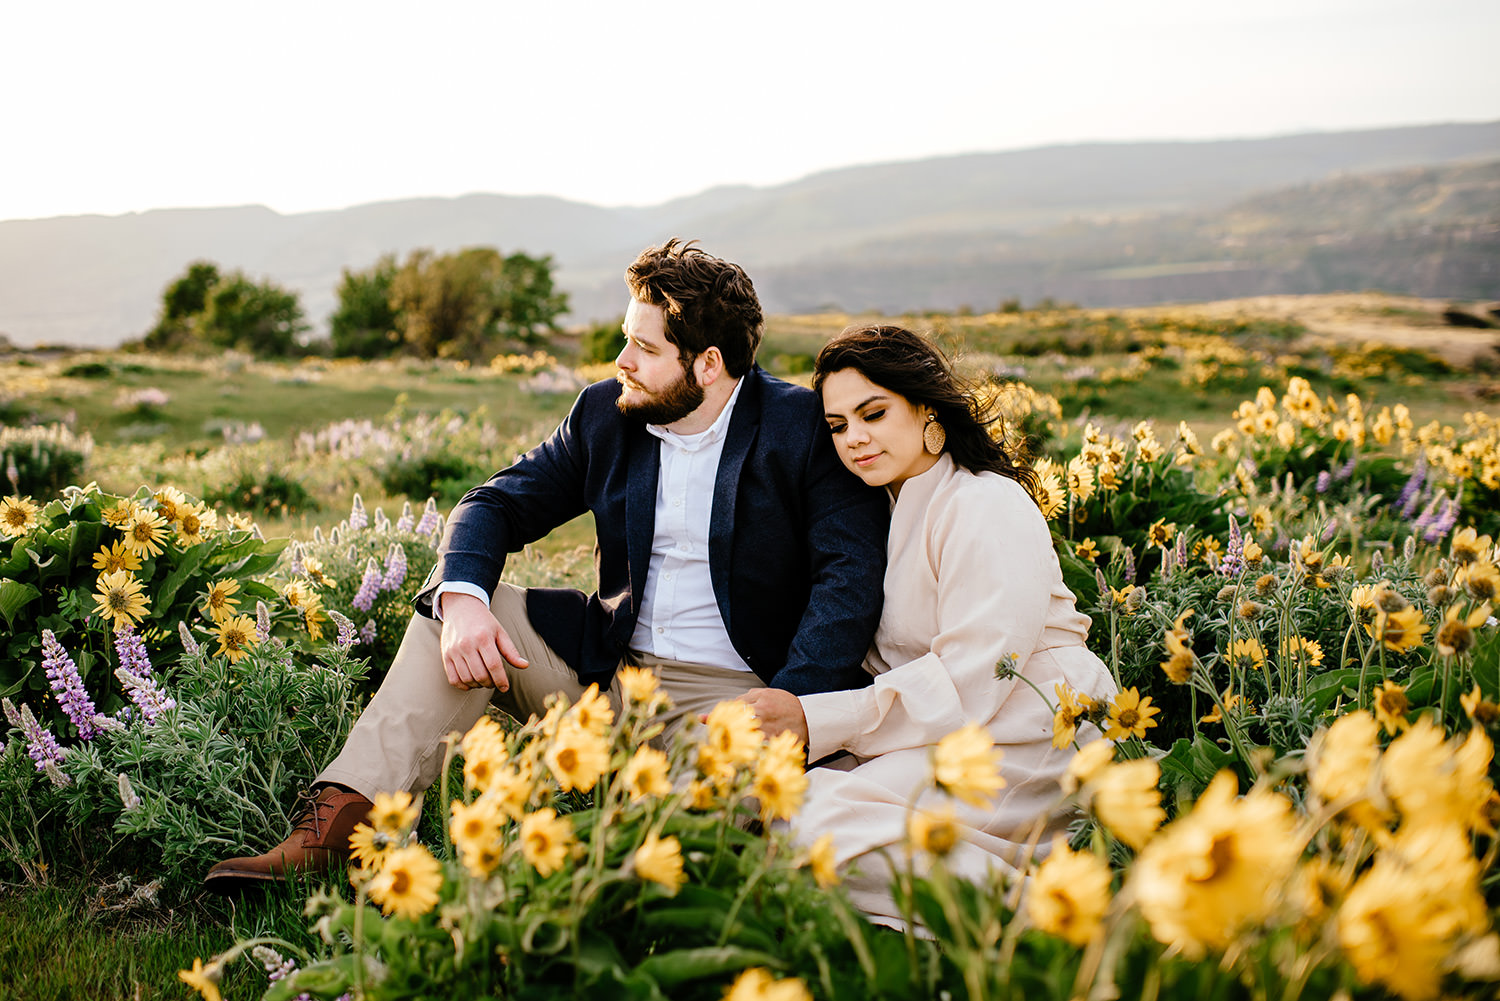 Wild-flower-engagement-session-at-rowena-crest-113.jpg